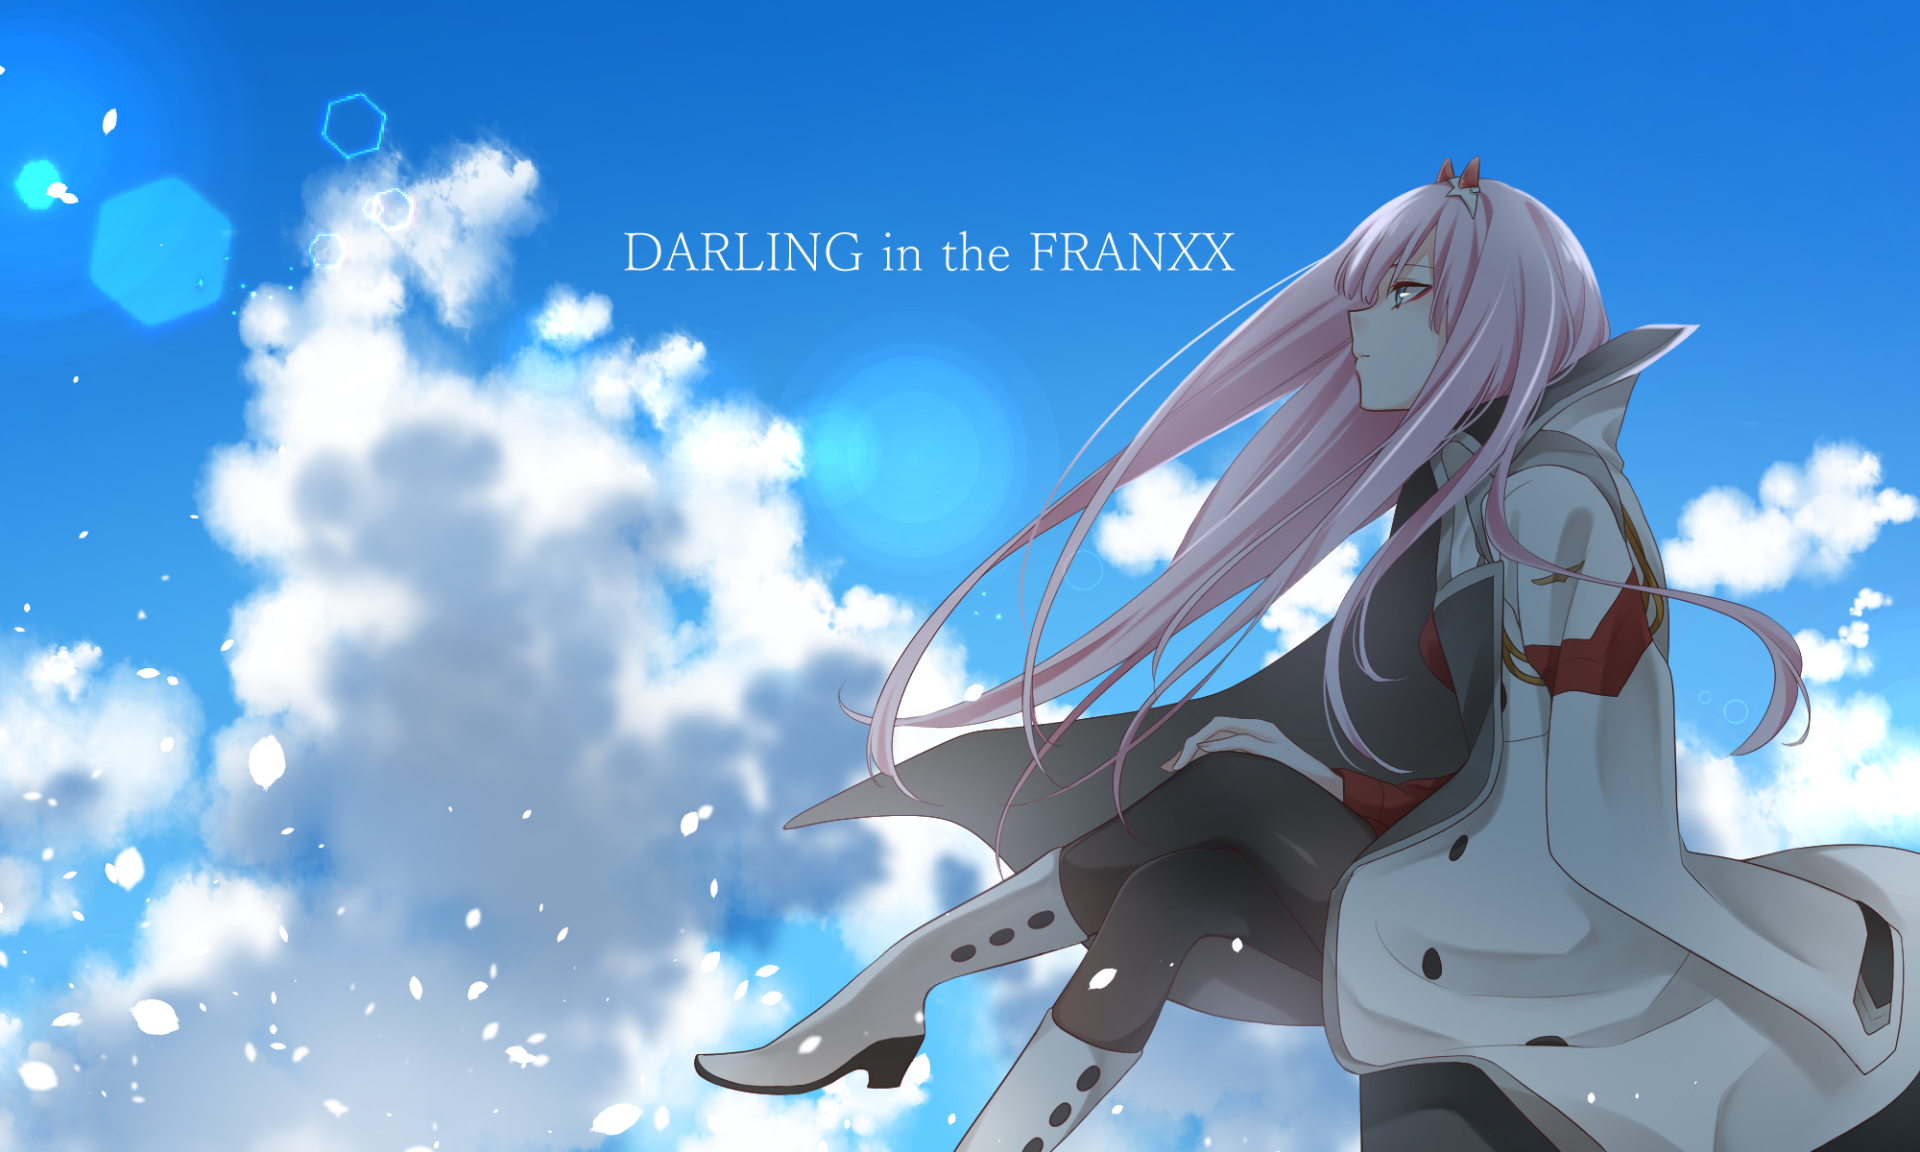 Darling in the Franxx shoes